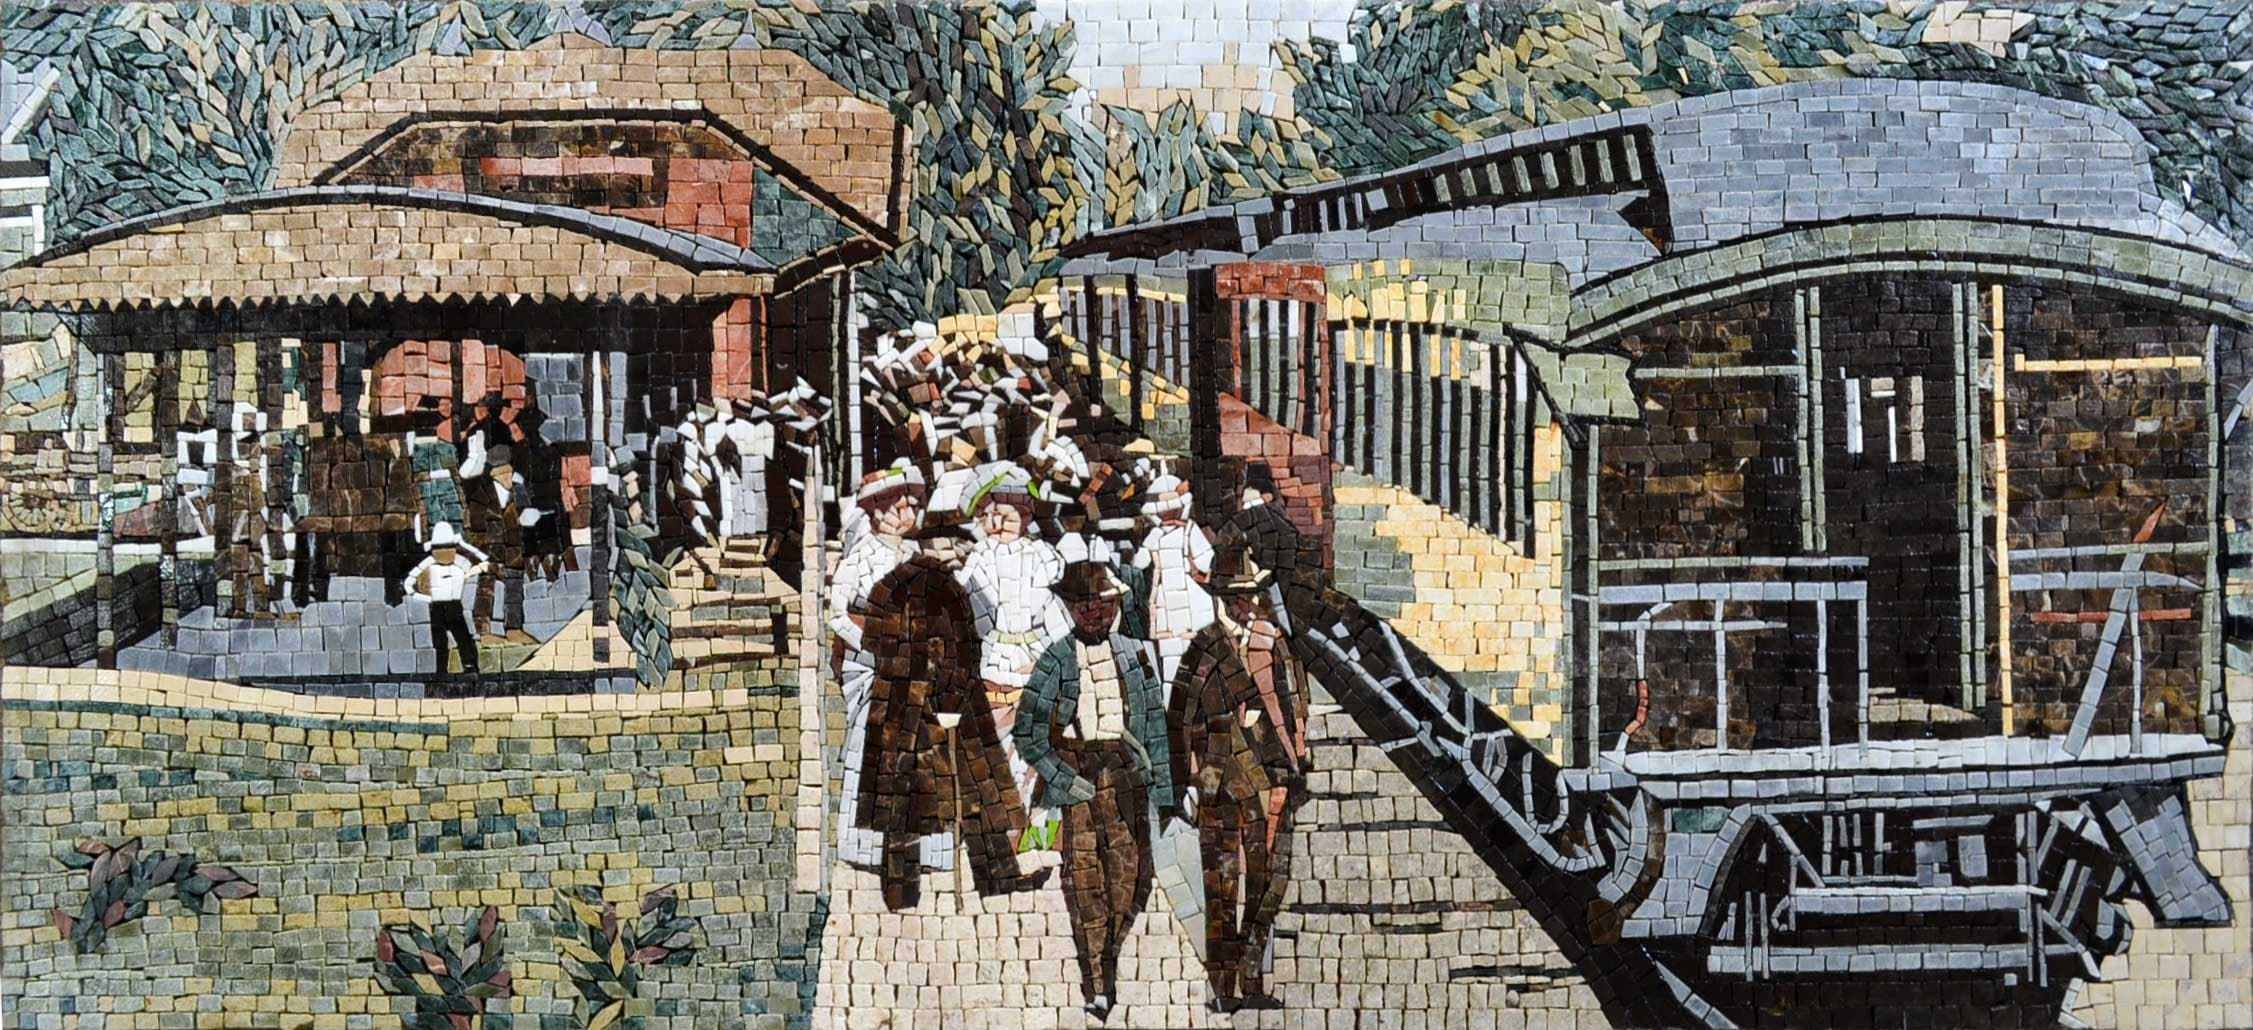 Jorge Monro Train Statoion Mosaic Art Reproduction Pic